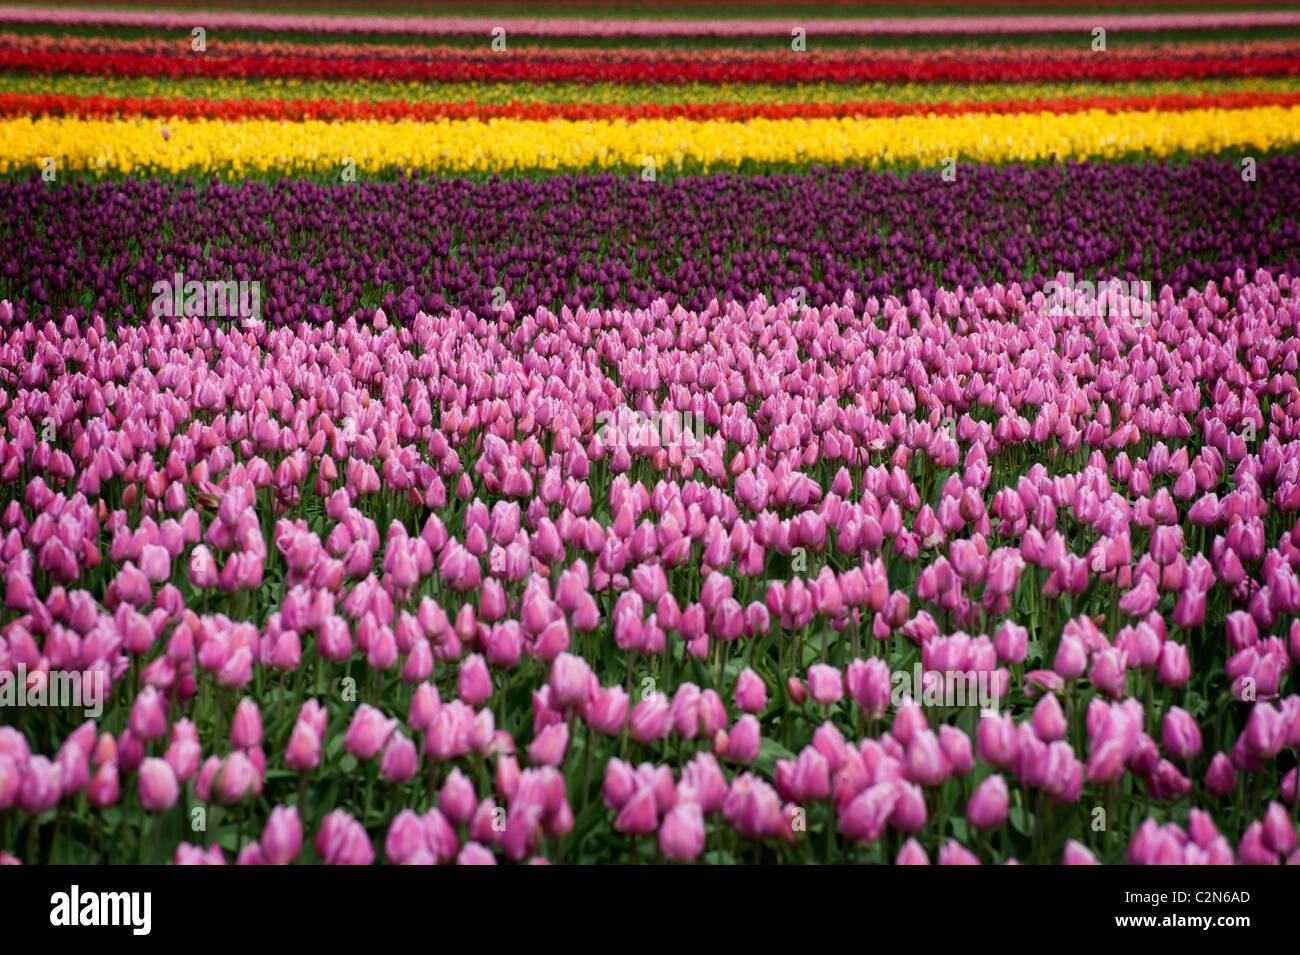 Colorful tulip fields can be seen in the springtime in the Skagit Valley of Washington state. - Stock Image